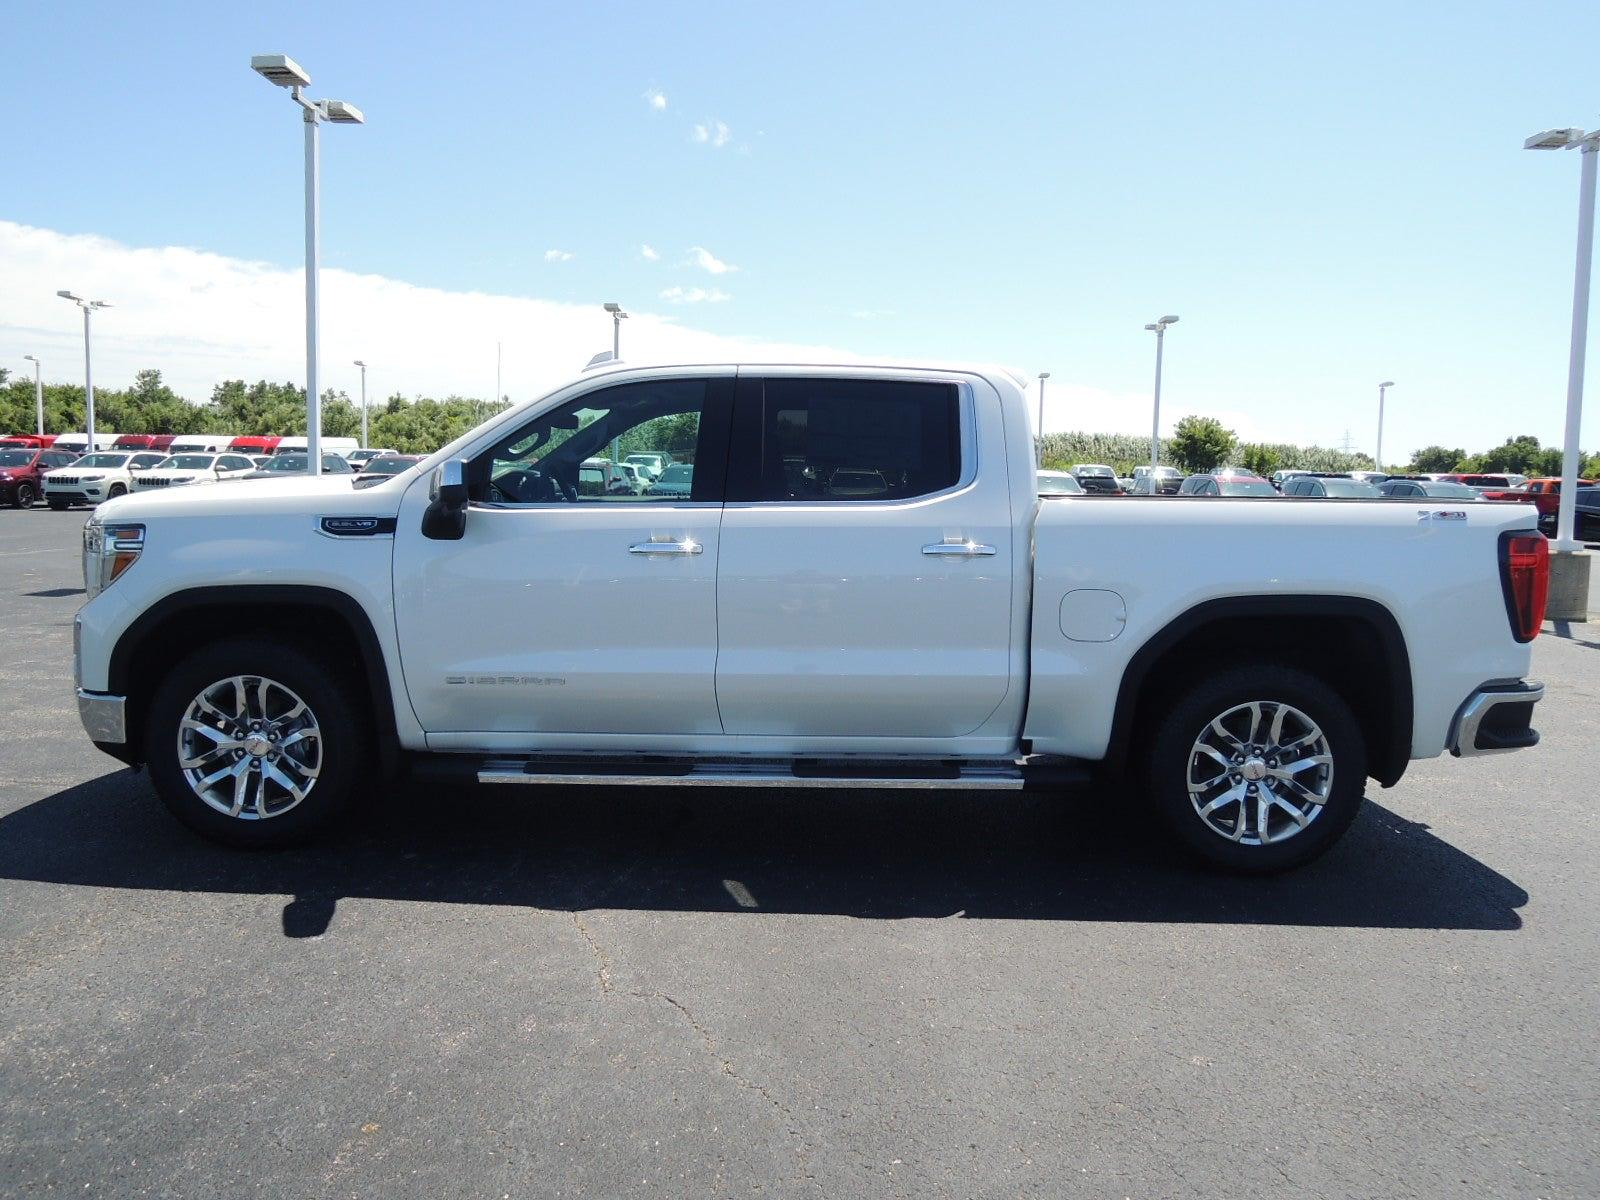 2021 GMC Sierra 1500 Crew Cab 4x4, Pickup #MT217 - photo 7